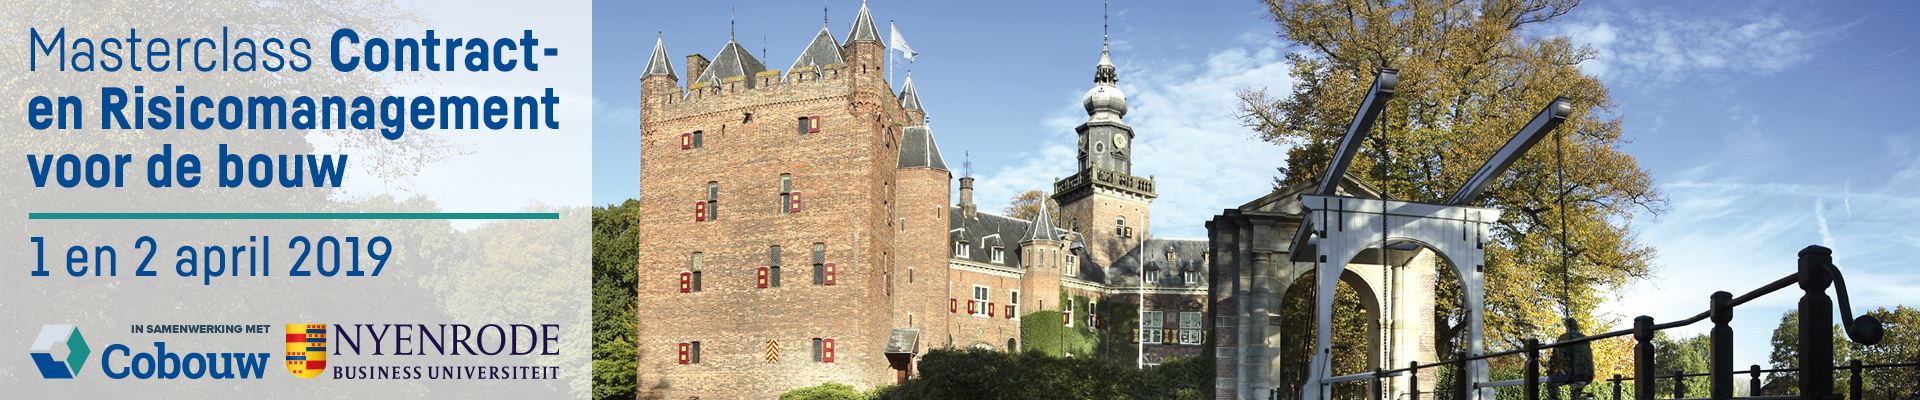 Nyenrode Contract- en risicomanagement 2019